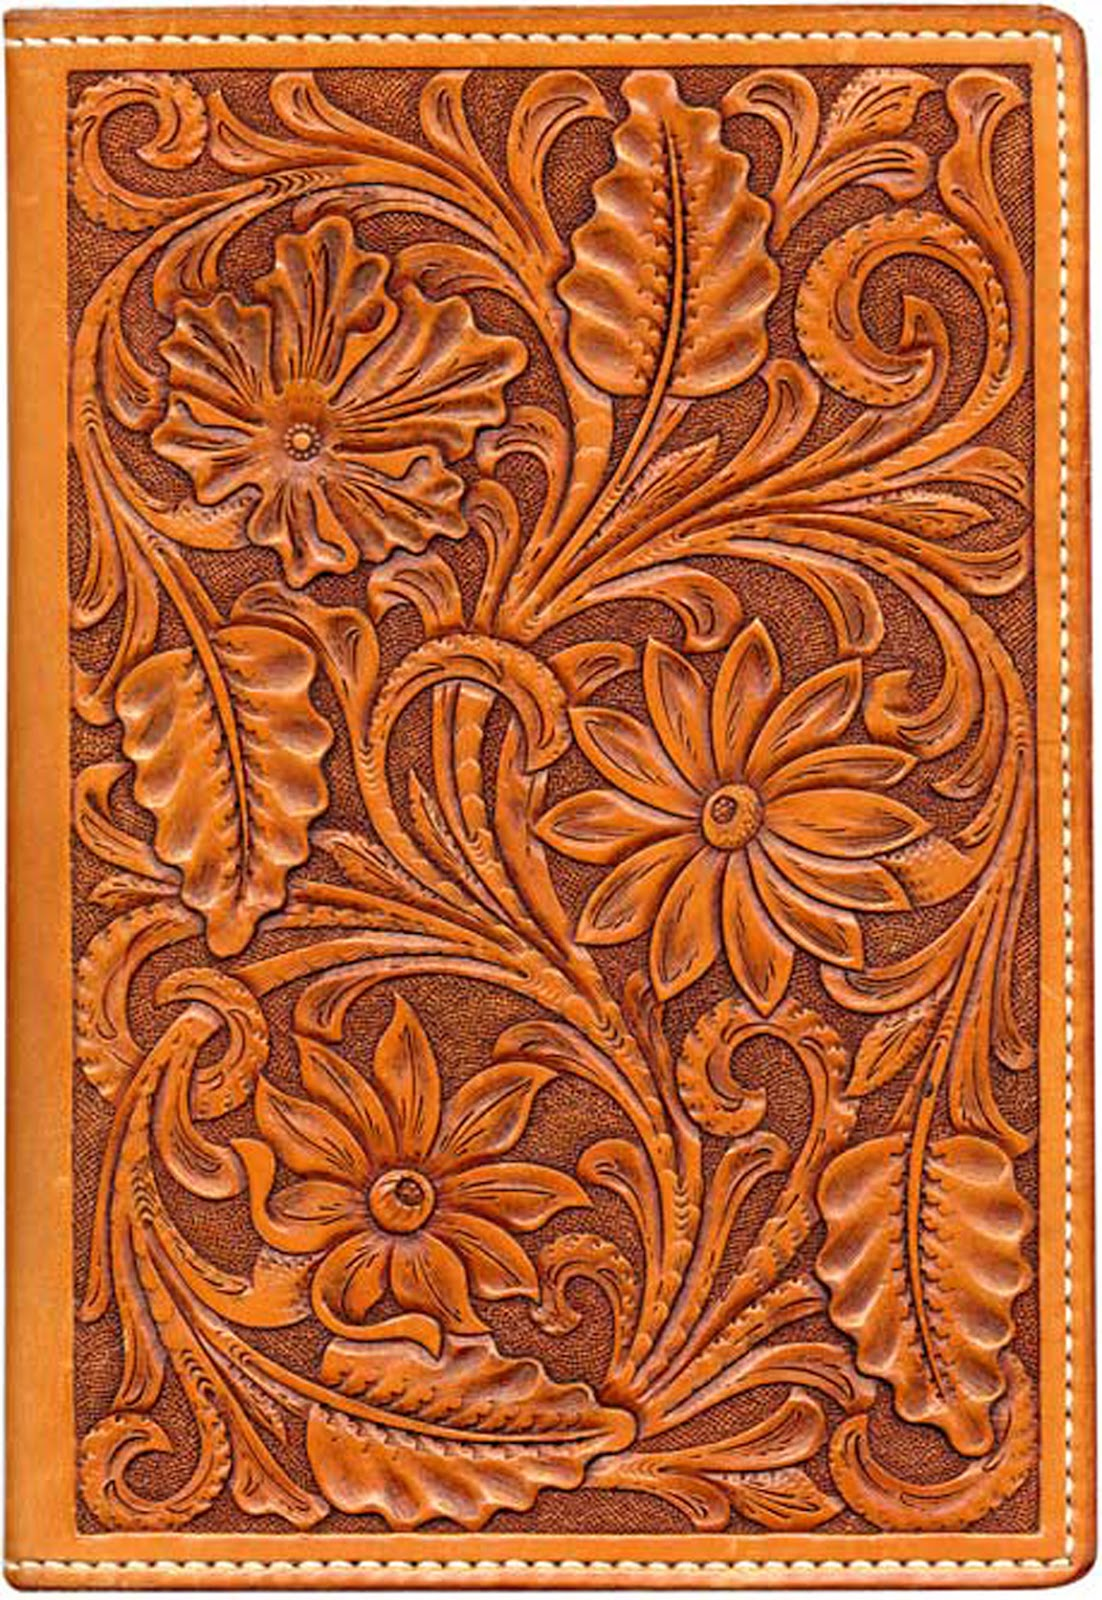 Wood Carving Patterns Best Design